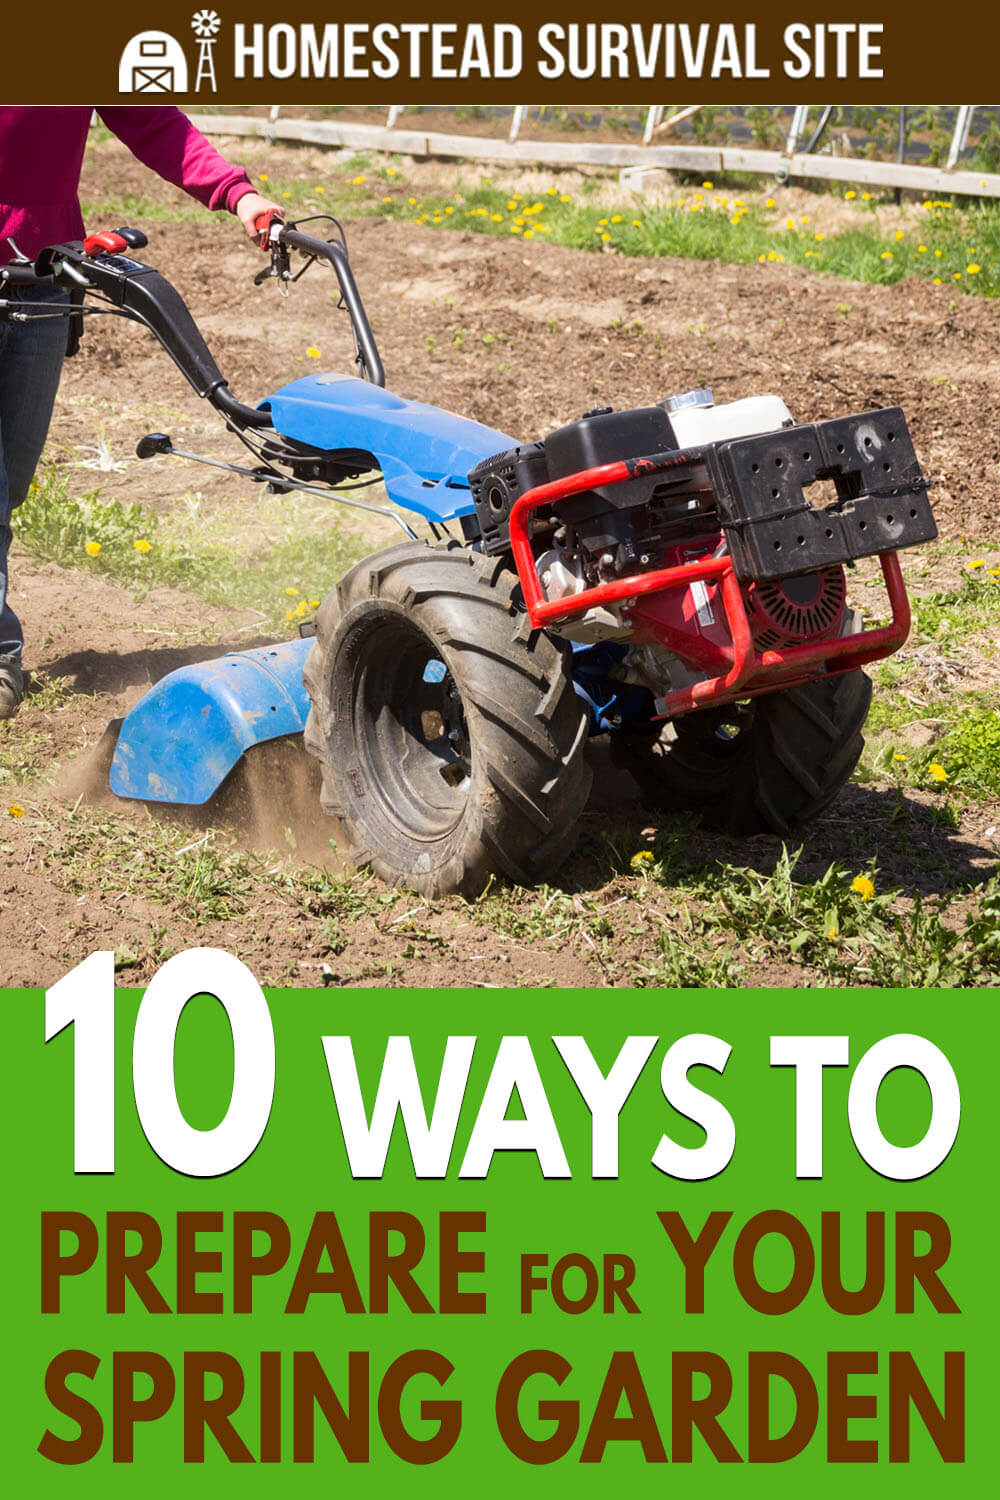 10 Ways to Prepare For Your Spring Garden